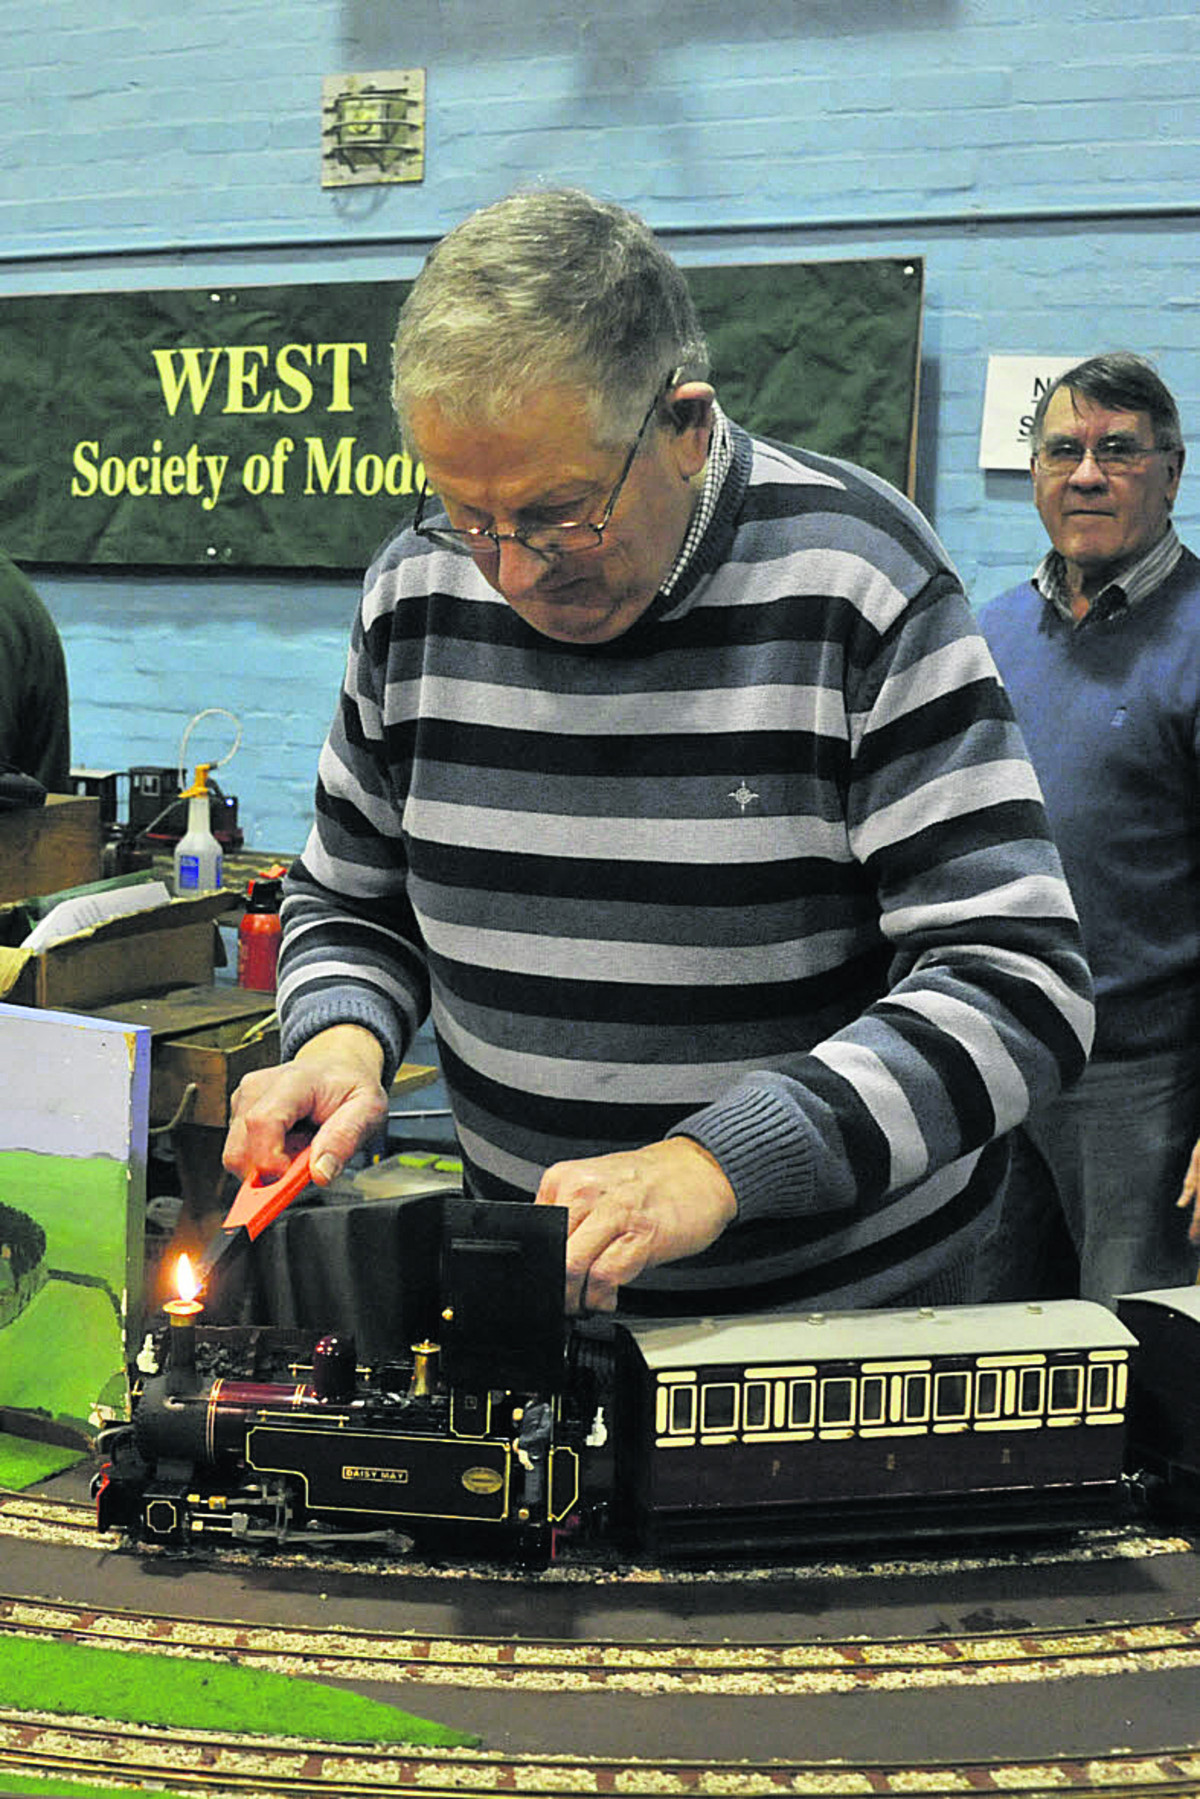 Rail fun had by all at Warminster model exhibition